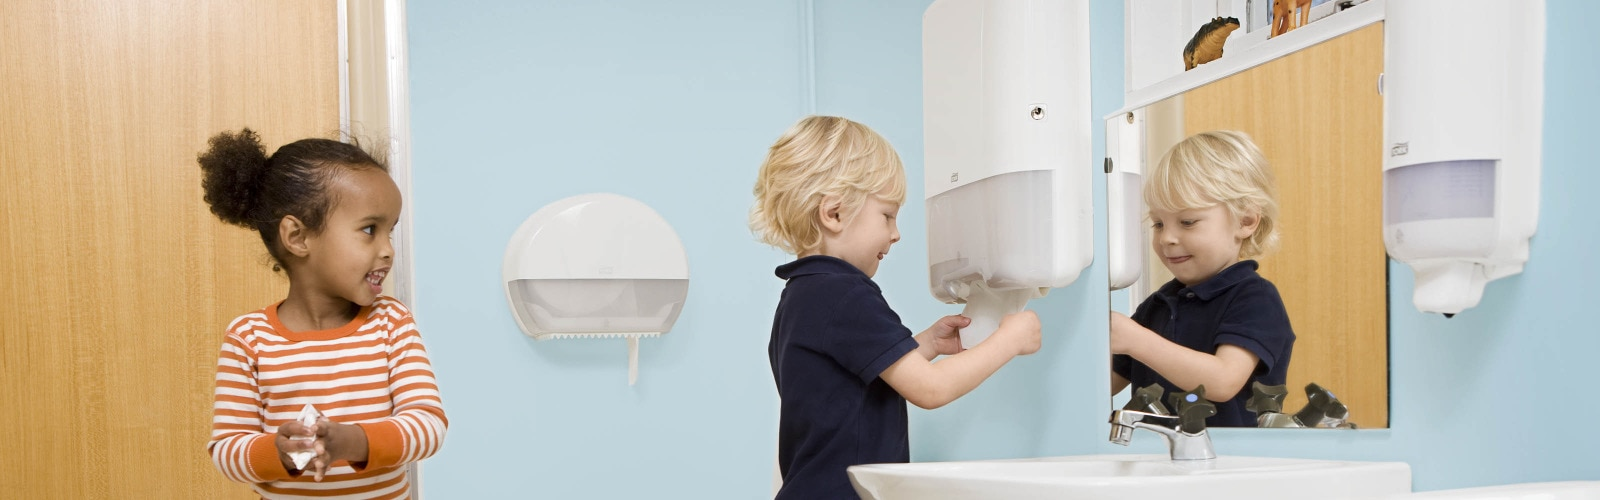 Lifestyle - Washroom - Xpress H2 - Education - Children